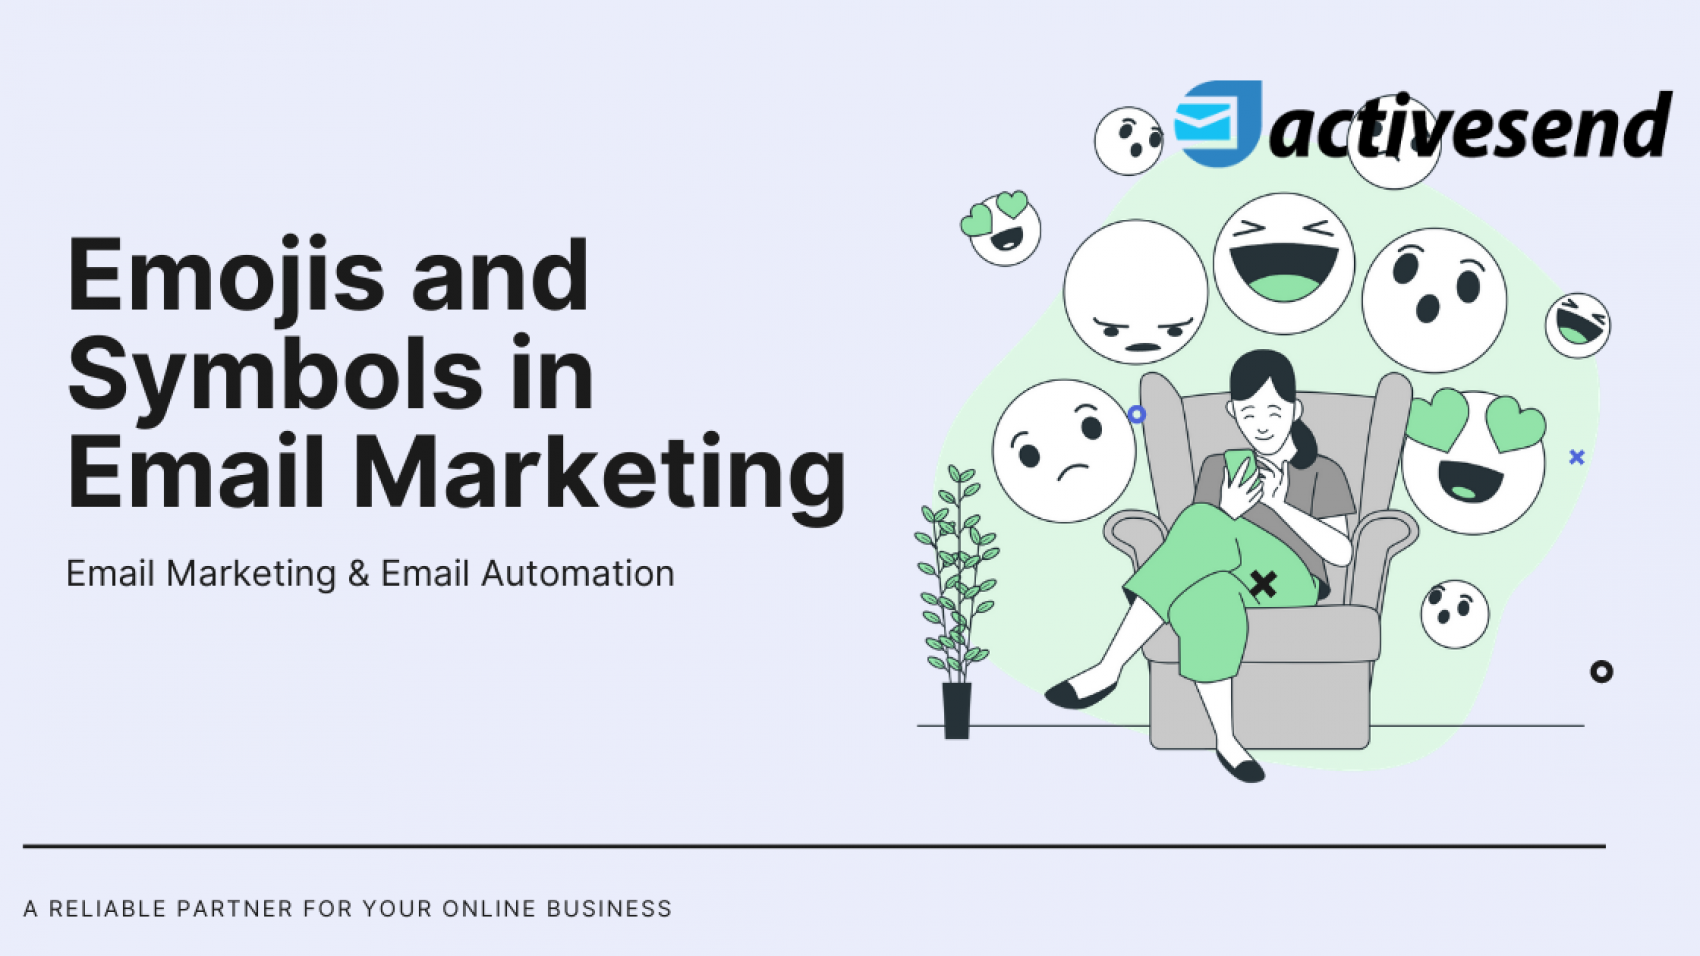 Emojis and Symbols in Email Marketing